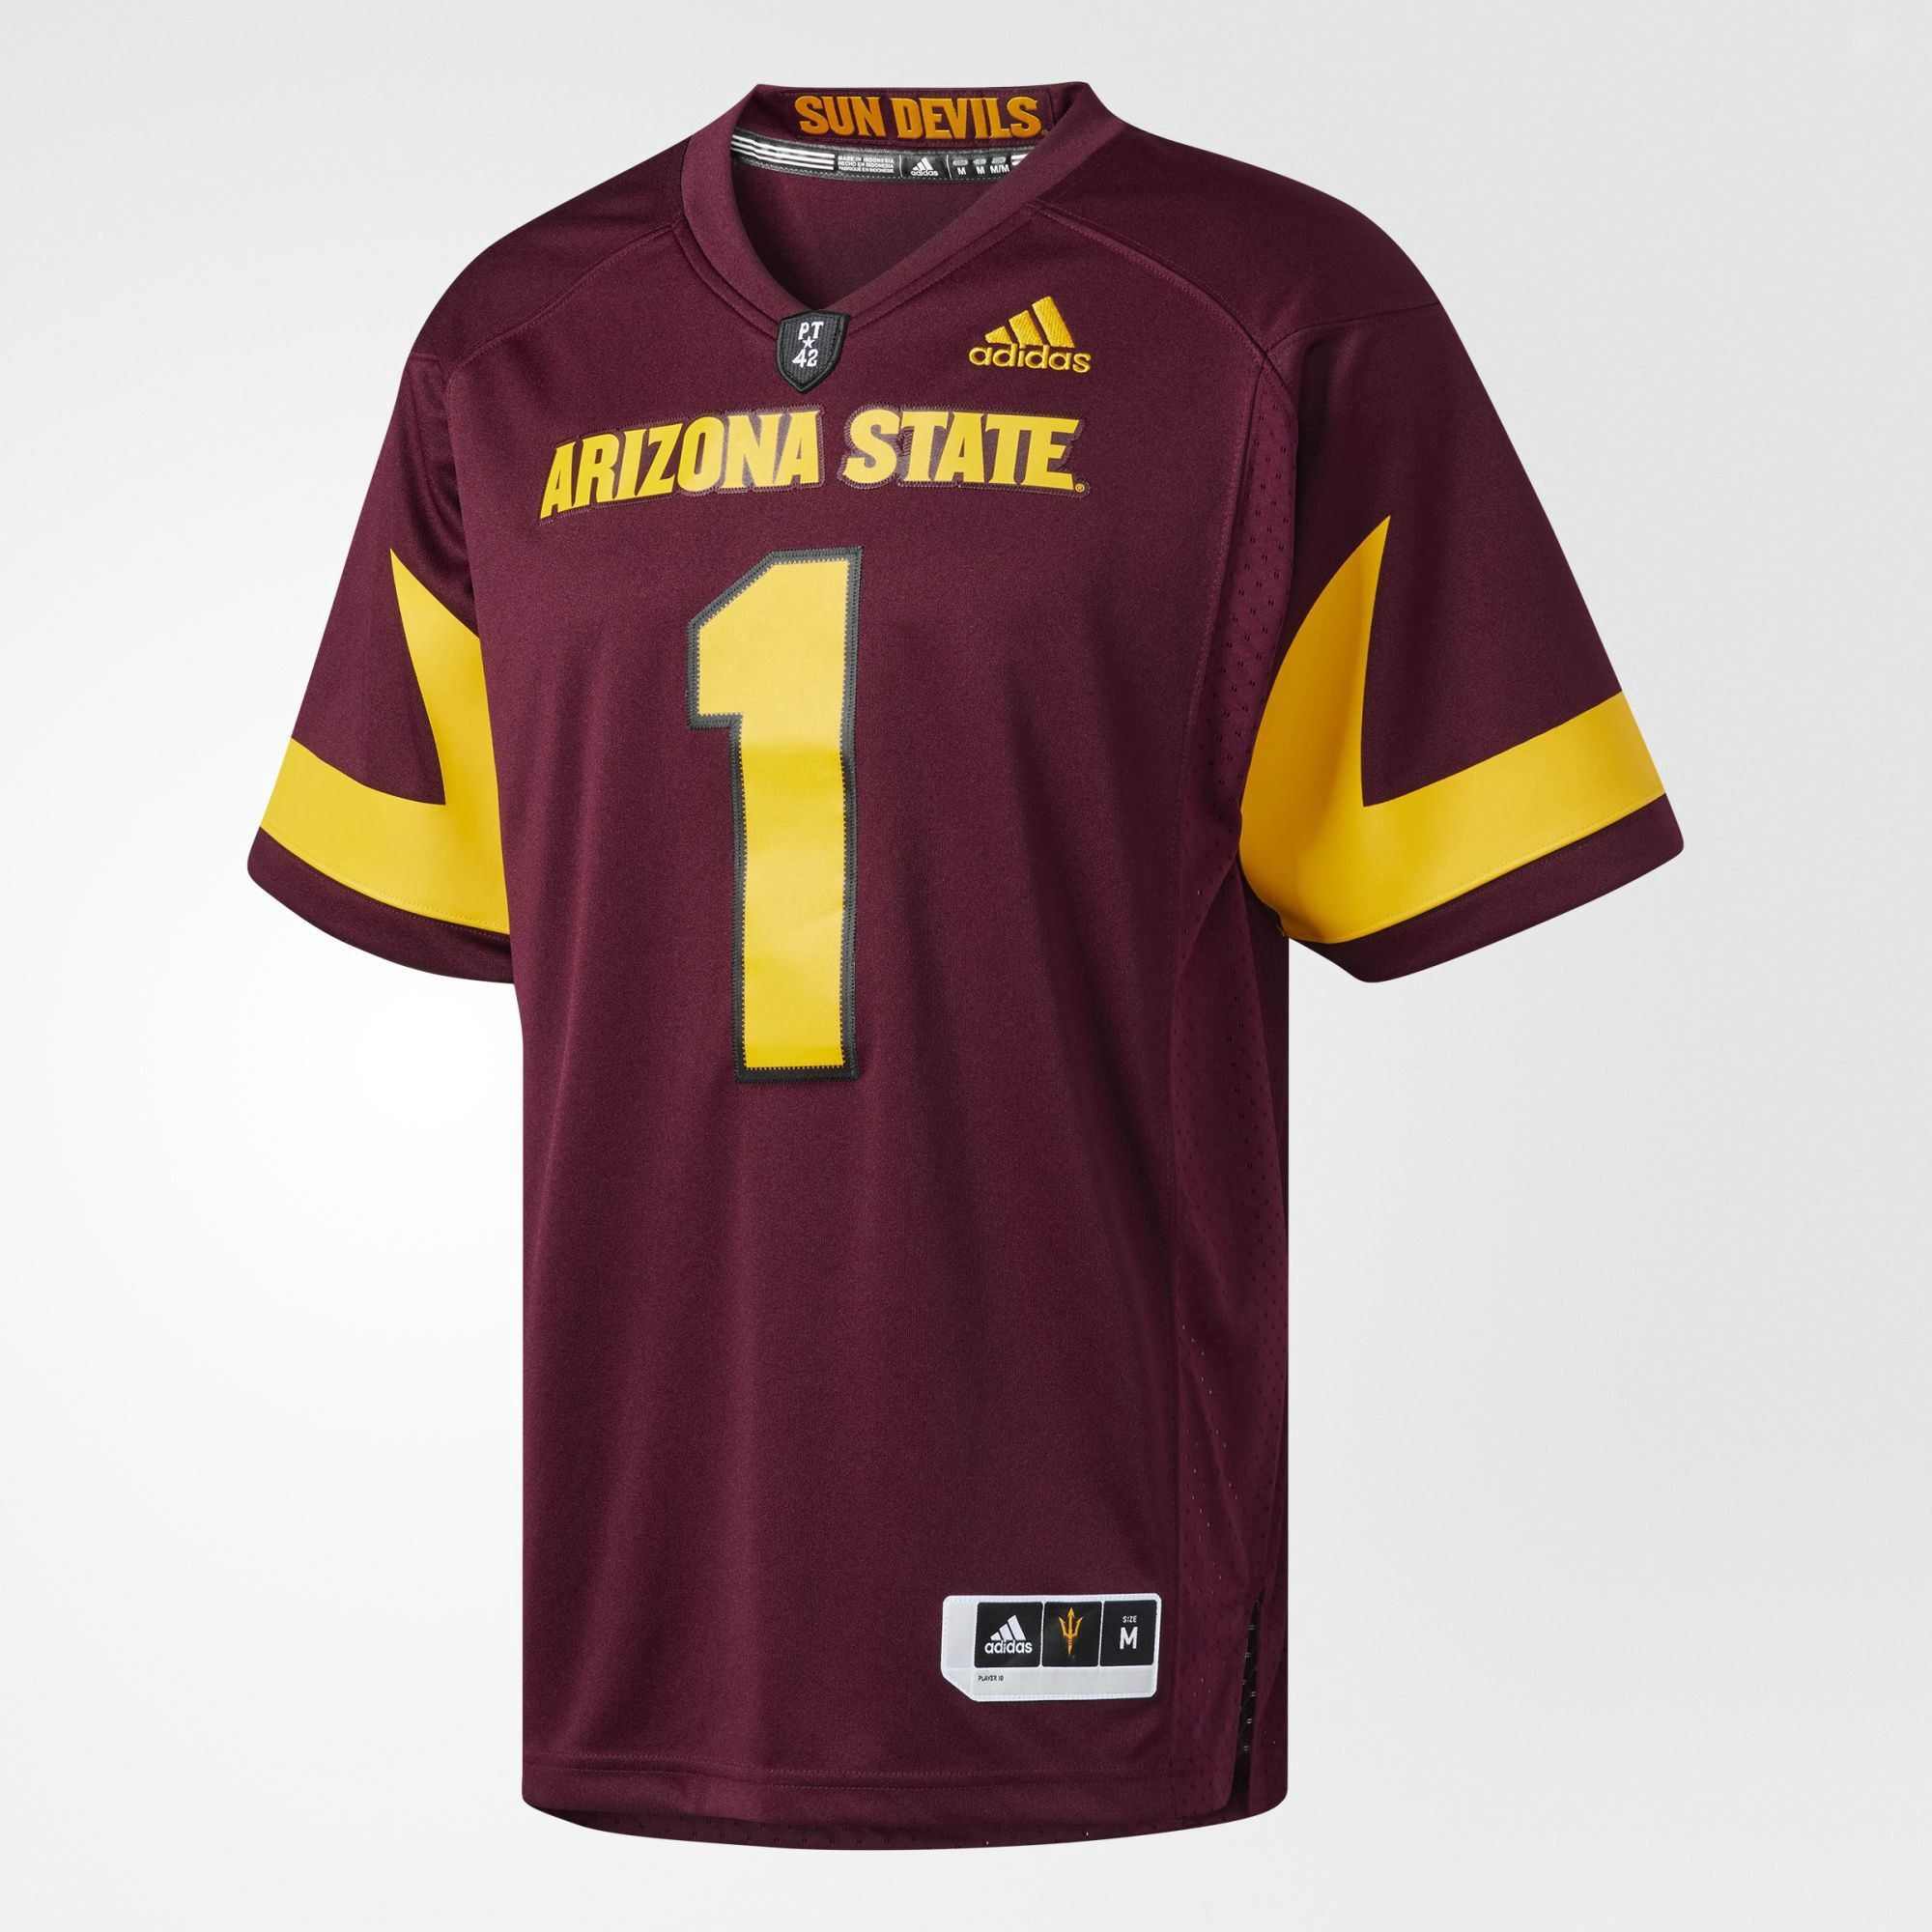 Adidas Originals Sun Devils Premier Football Jersey Adidasoriginals Cloth Adidas Adidas Originals Adidas Originals Mens